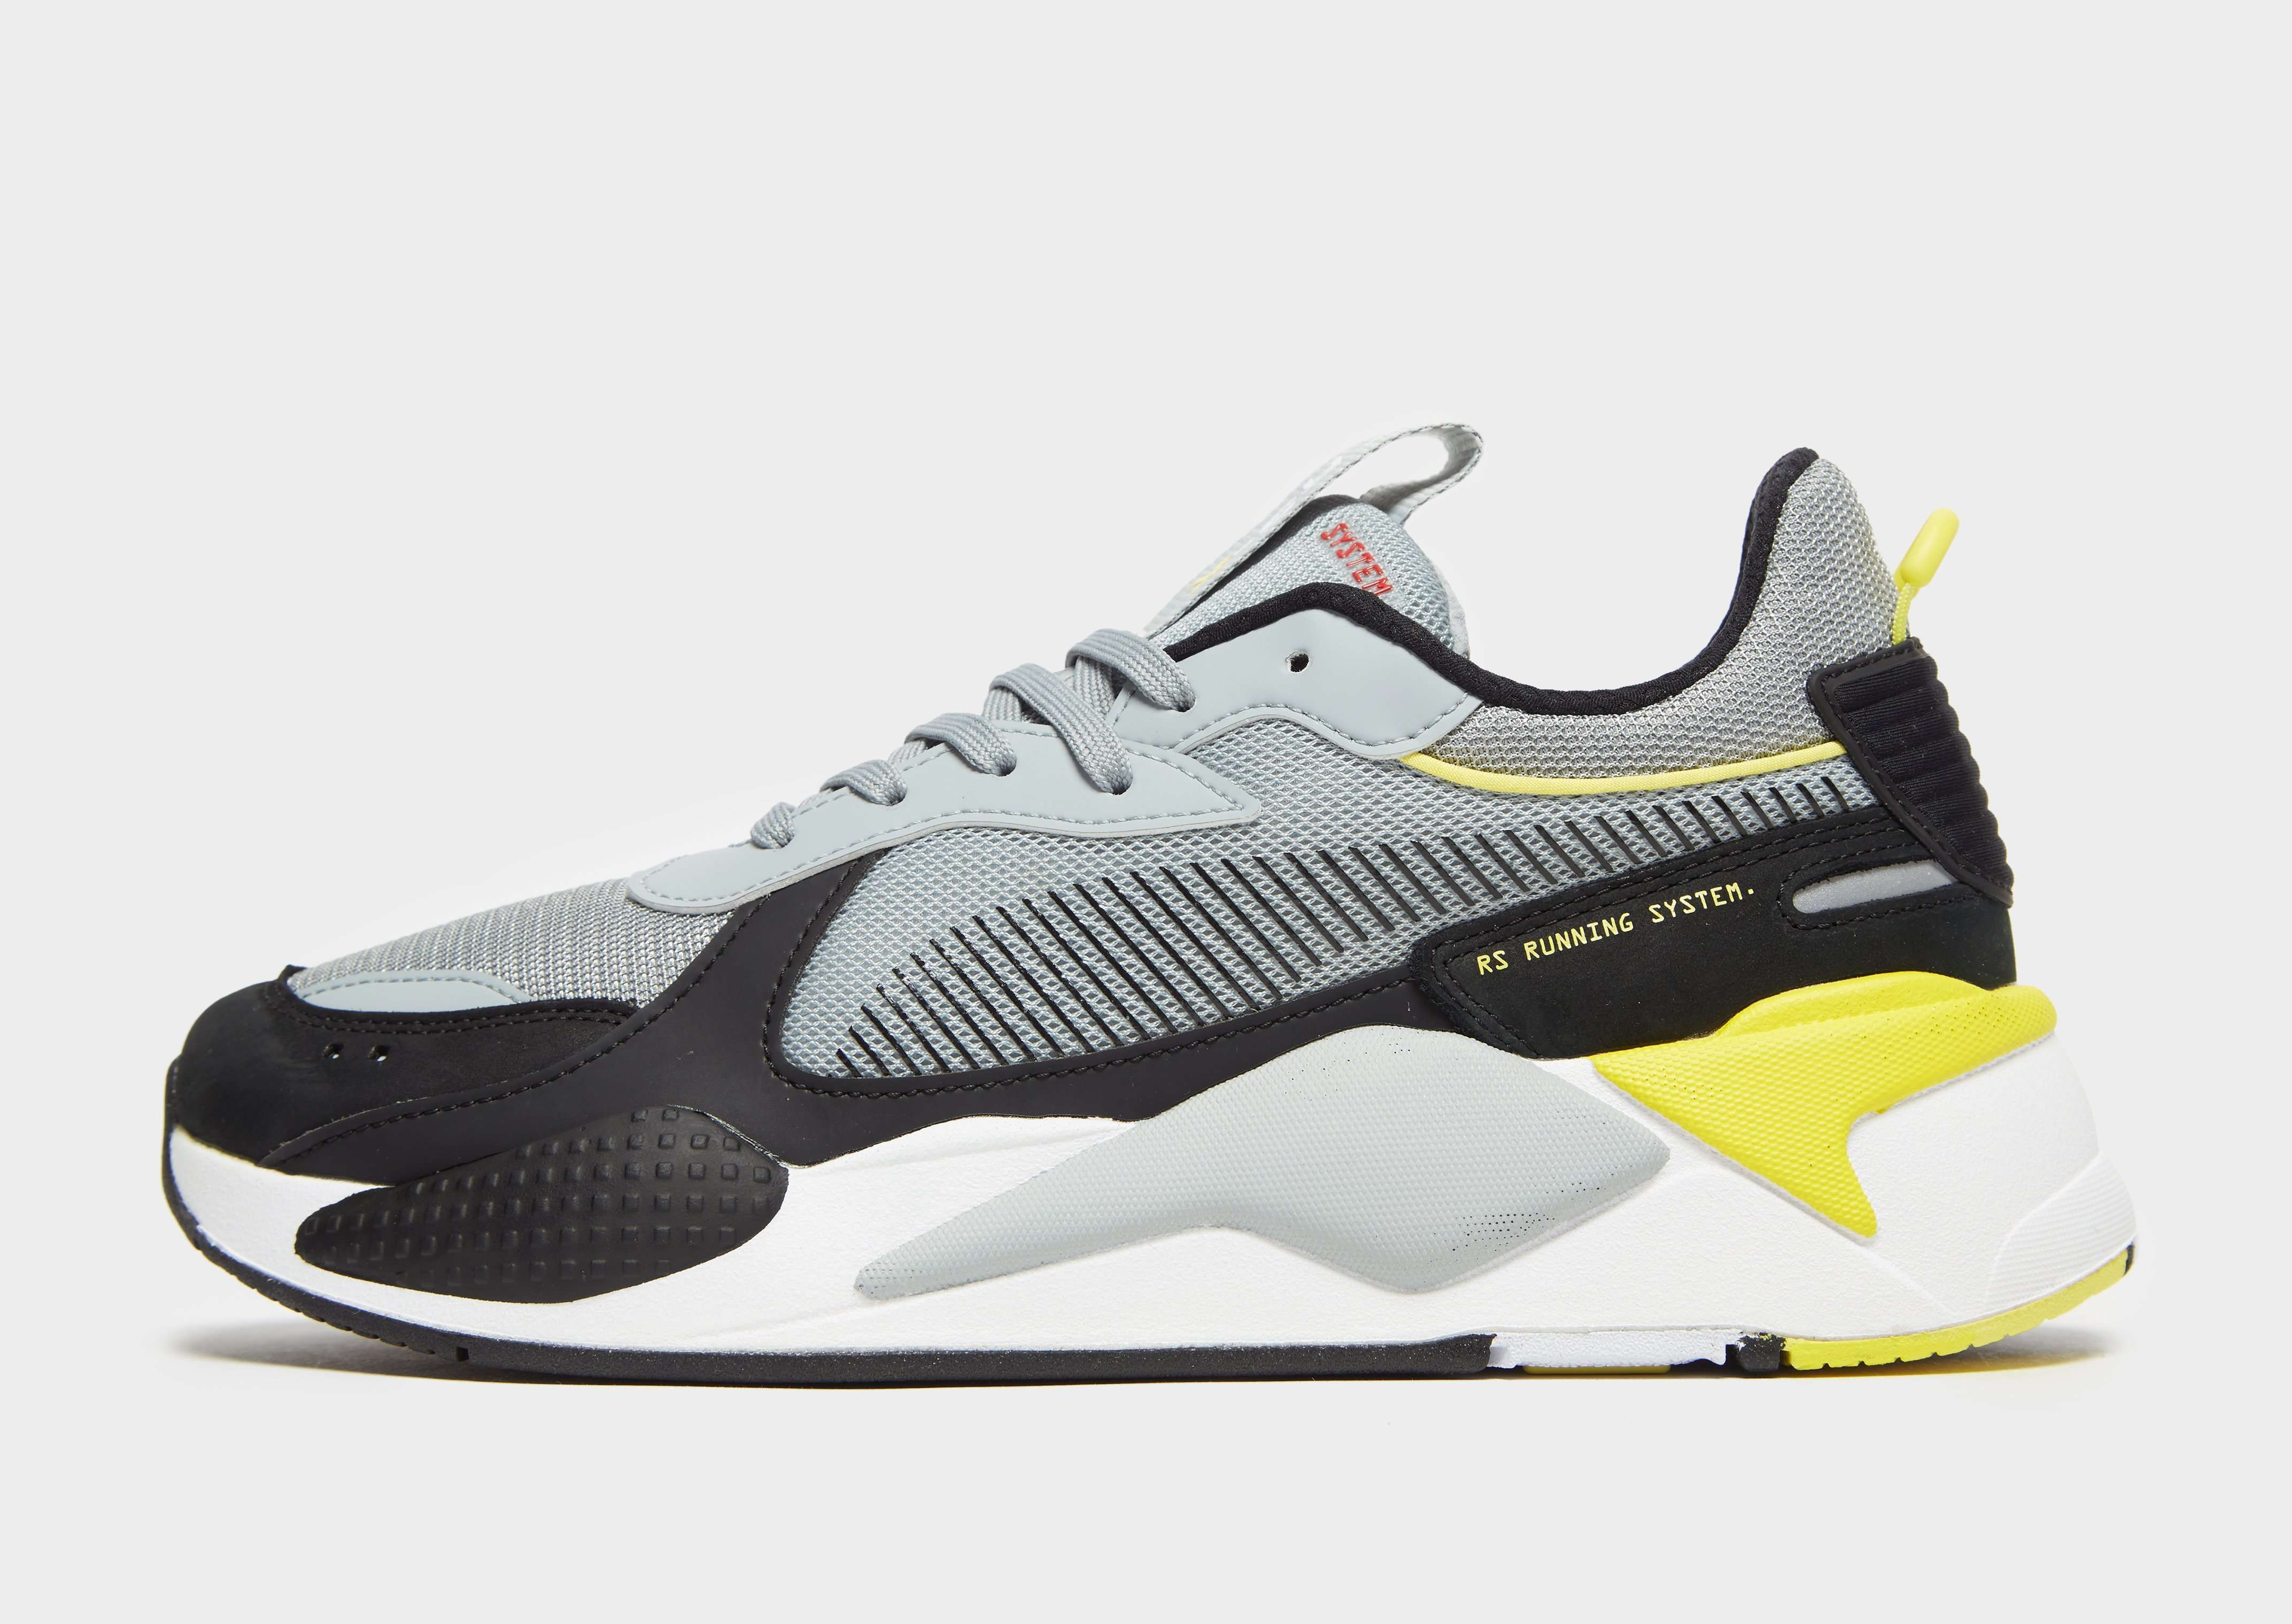 PUMA RSX Toys Shop online for PUMA RSX Toys with JD